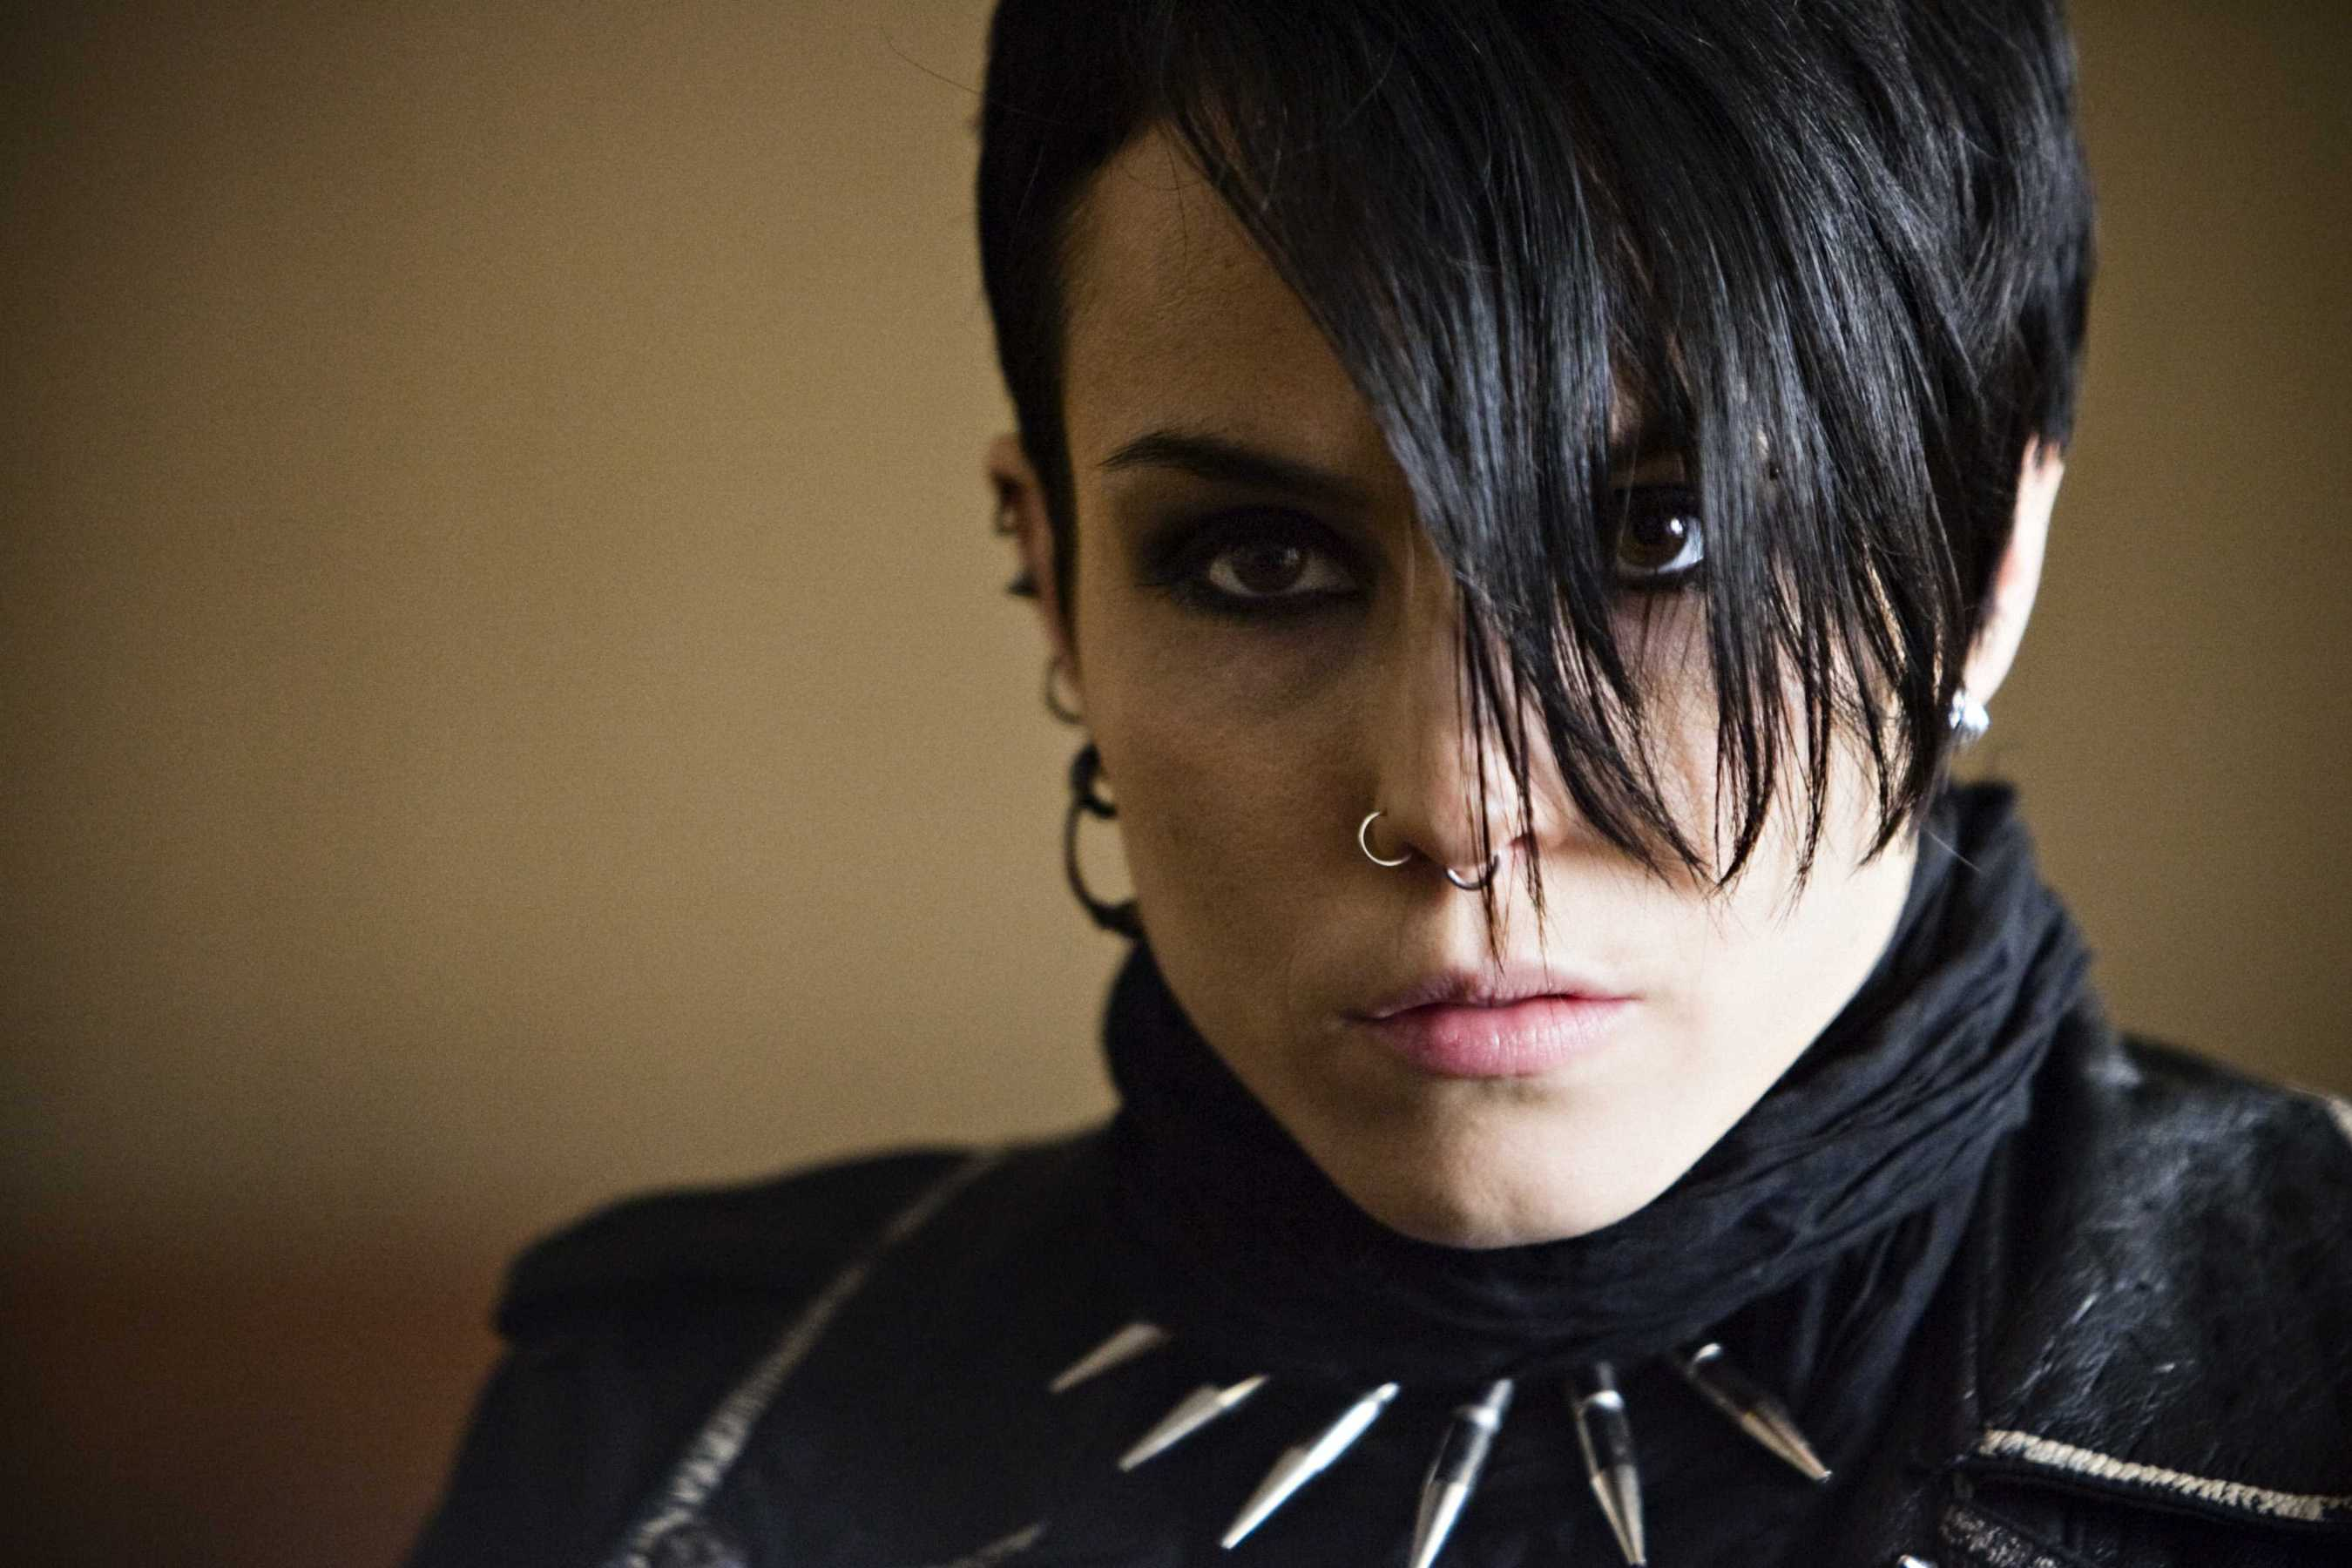 An extraordinary breakout performance from Swedish actress Noomi Rapace as Lisbeth Salander in The Girl with the Dragon Tattoo (2009)